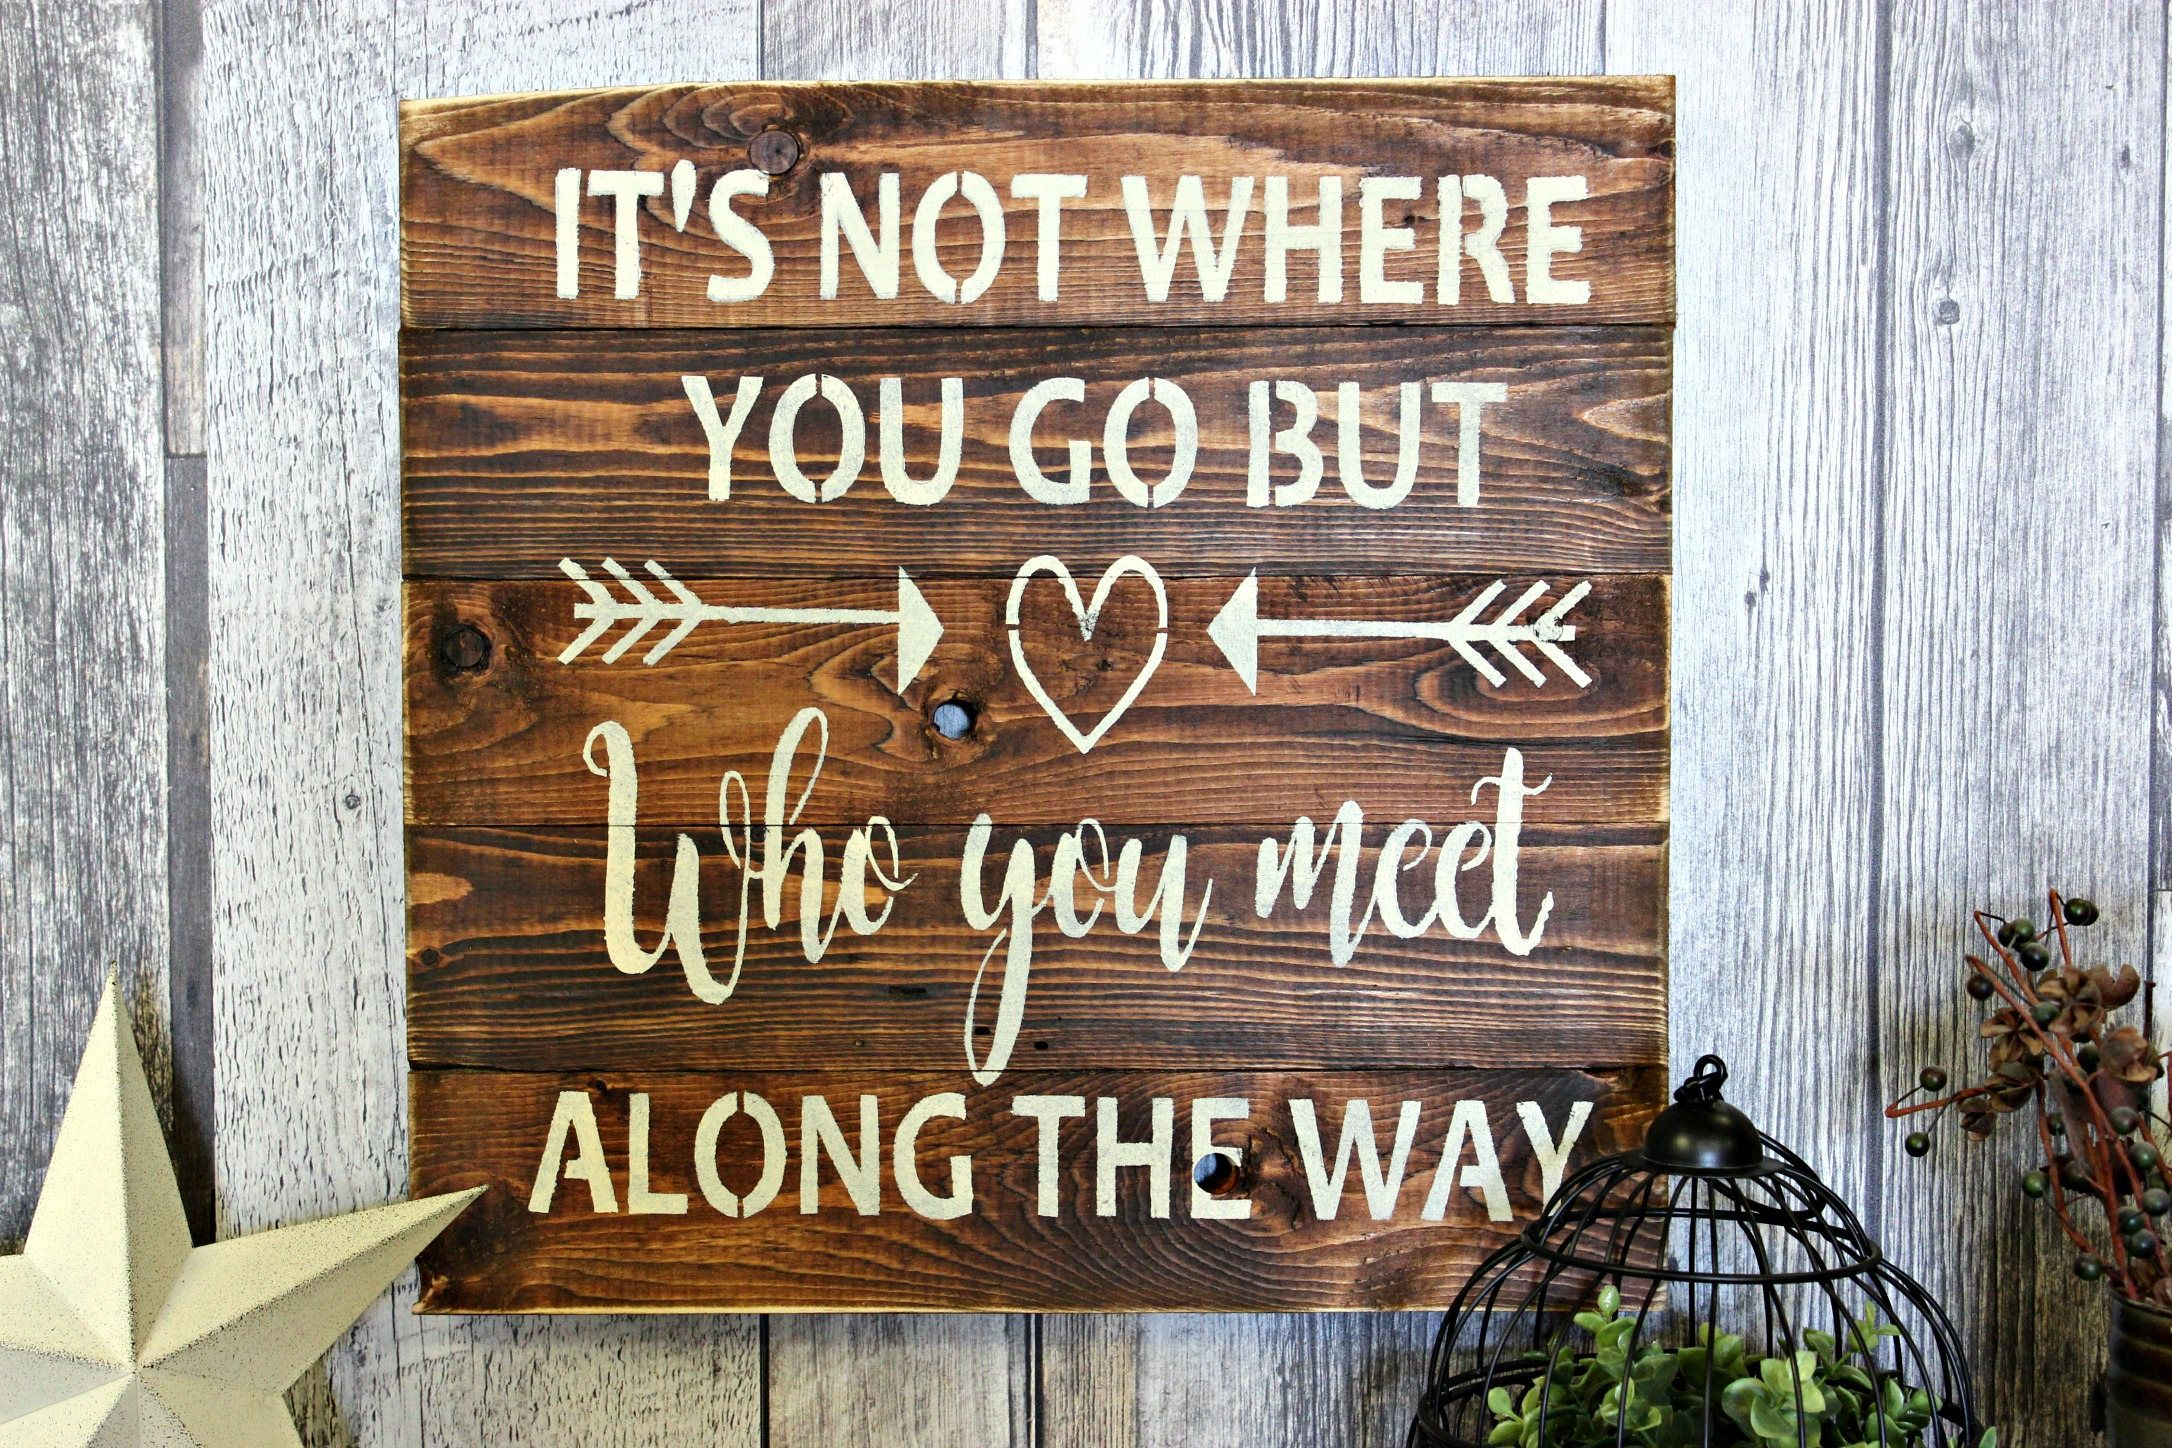 Its not where you go but who you meet along the way